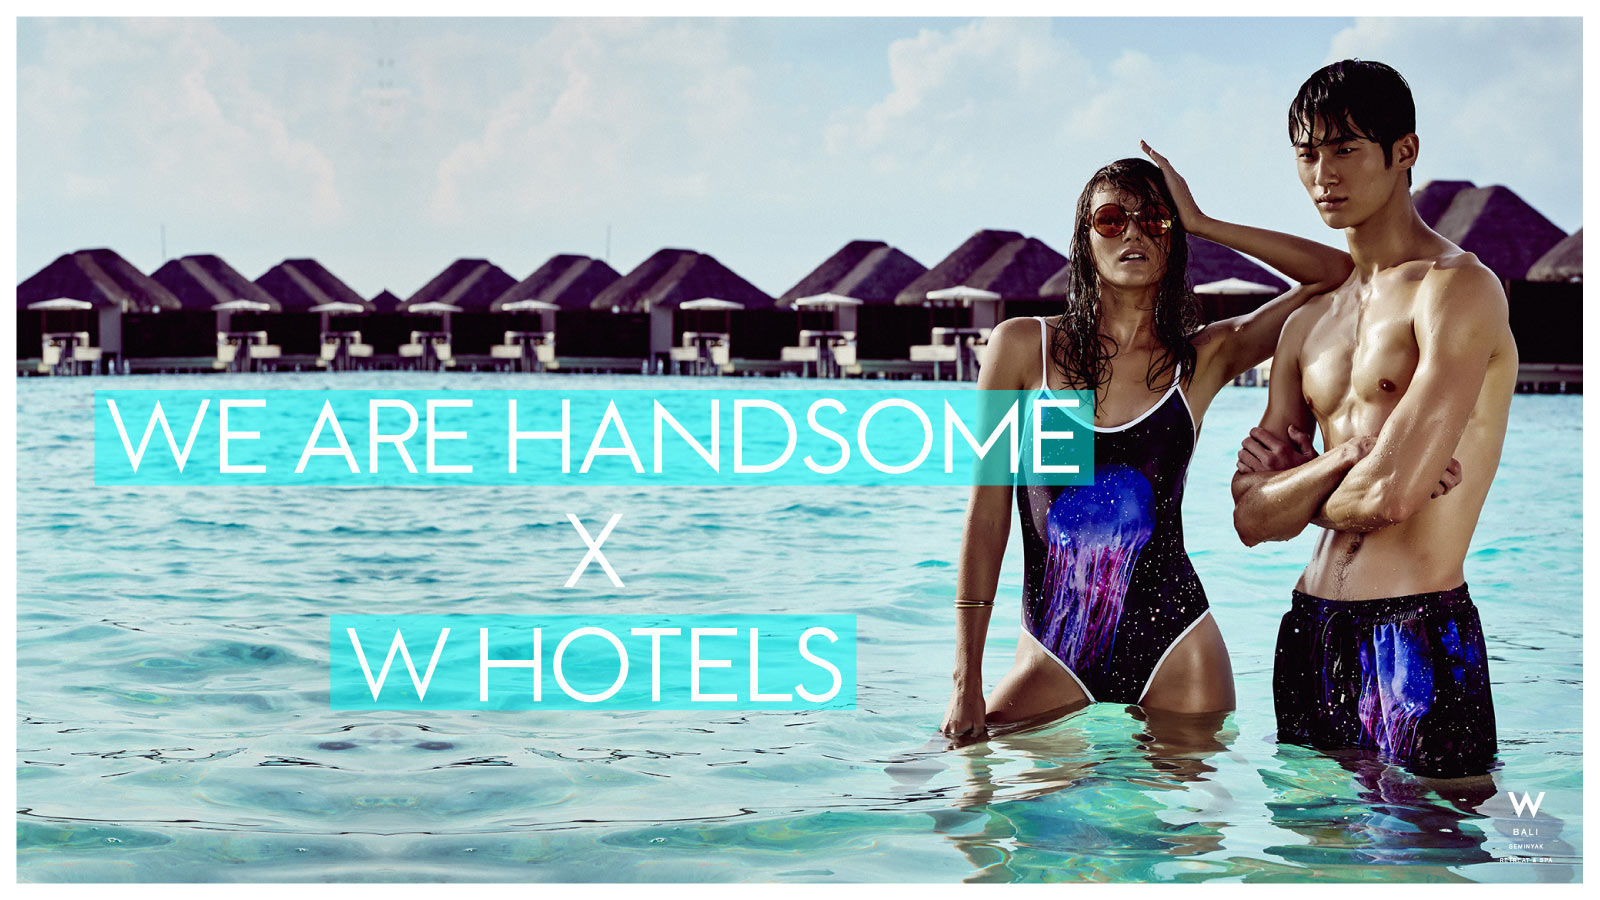 WE ARE HANDSOME X W HOTELS